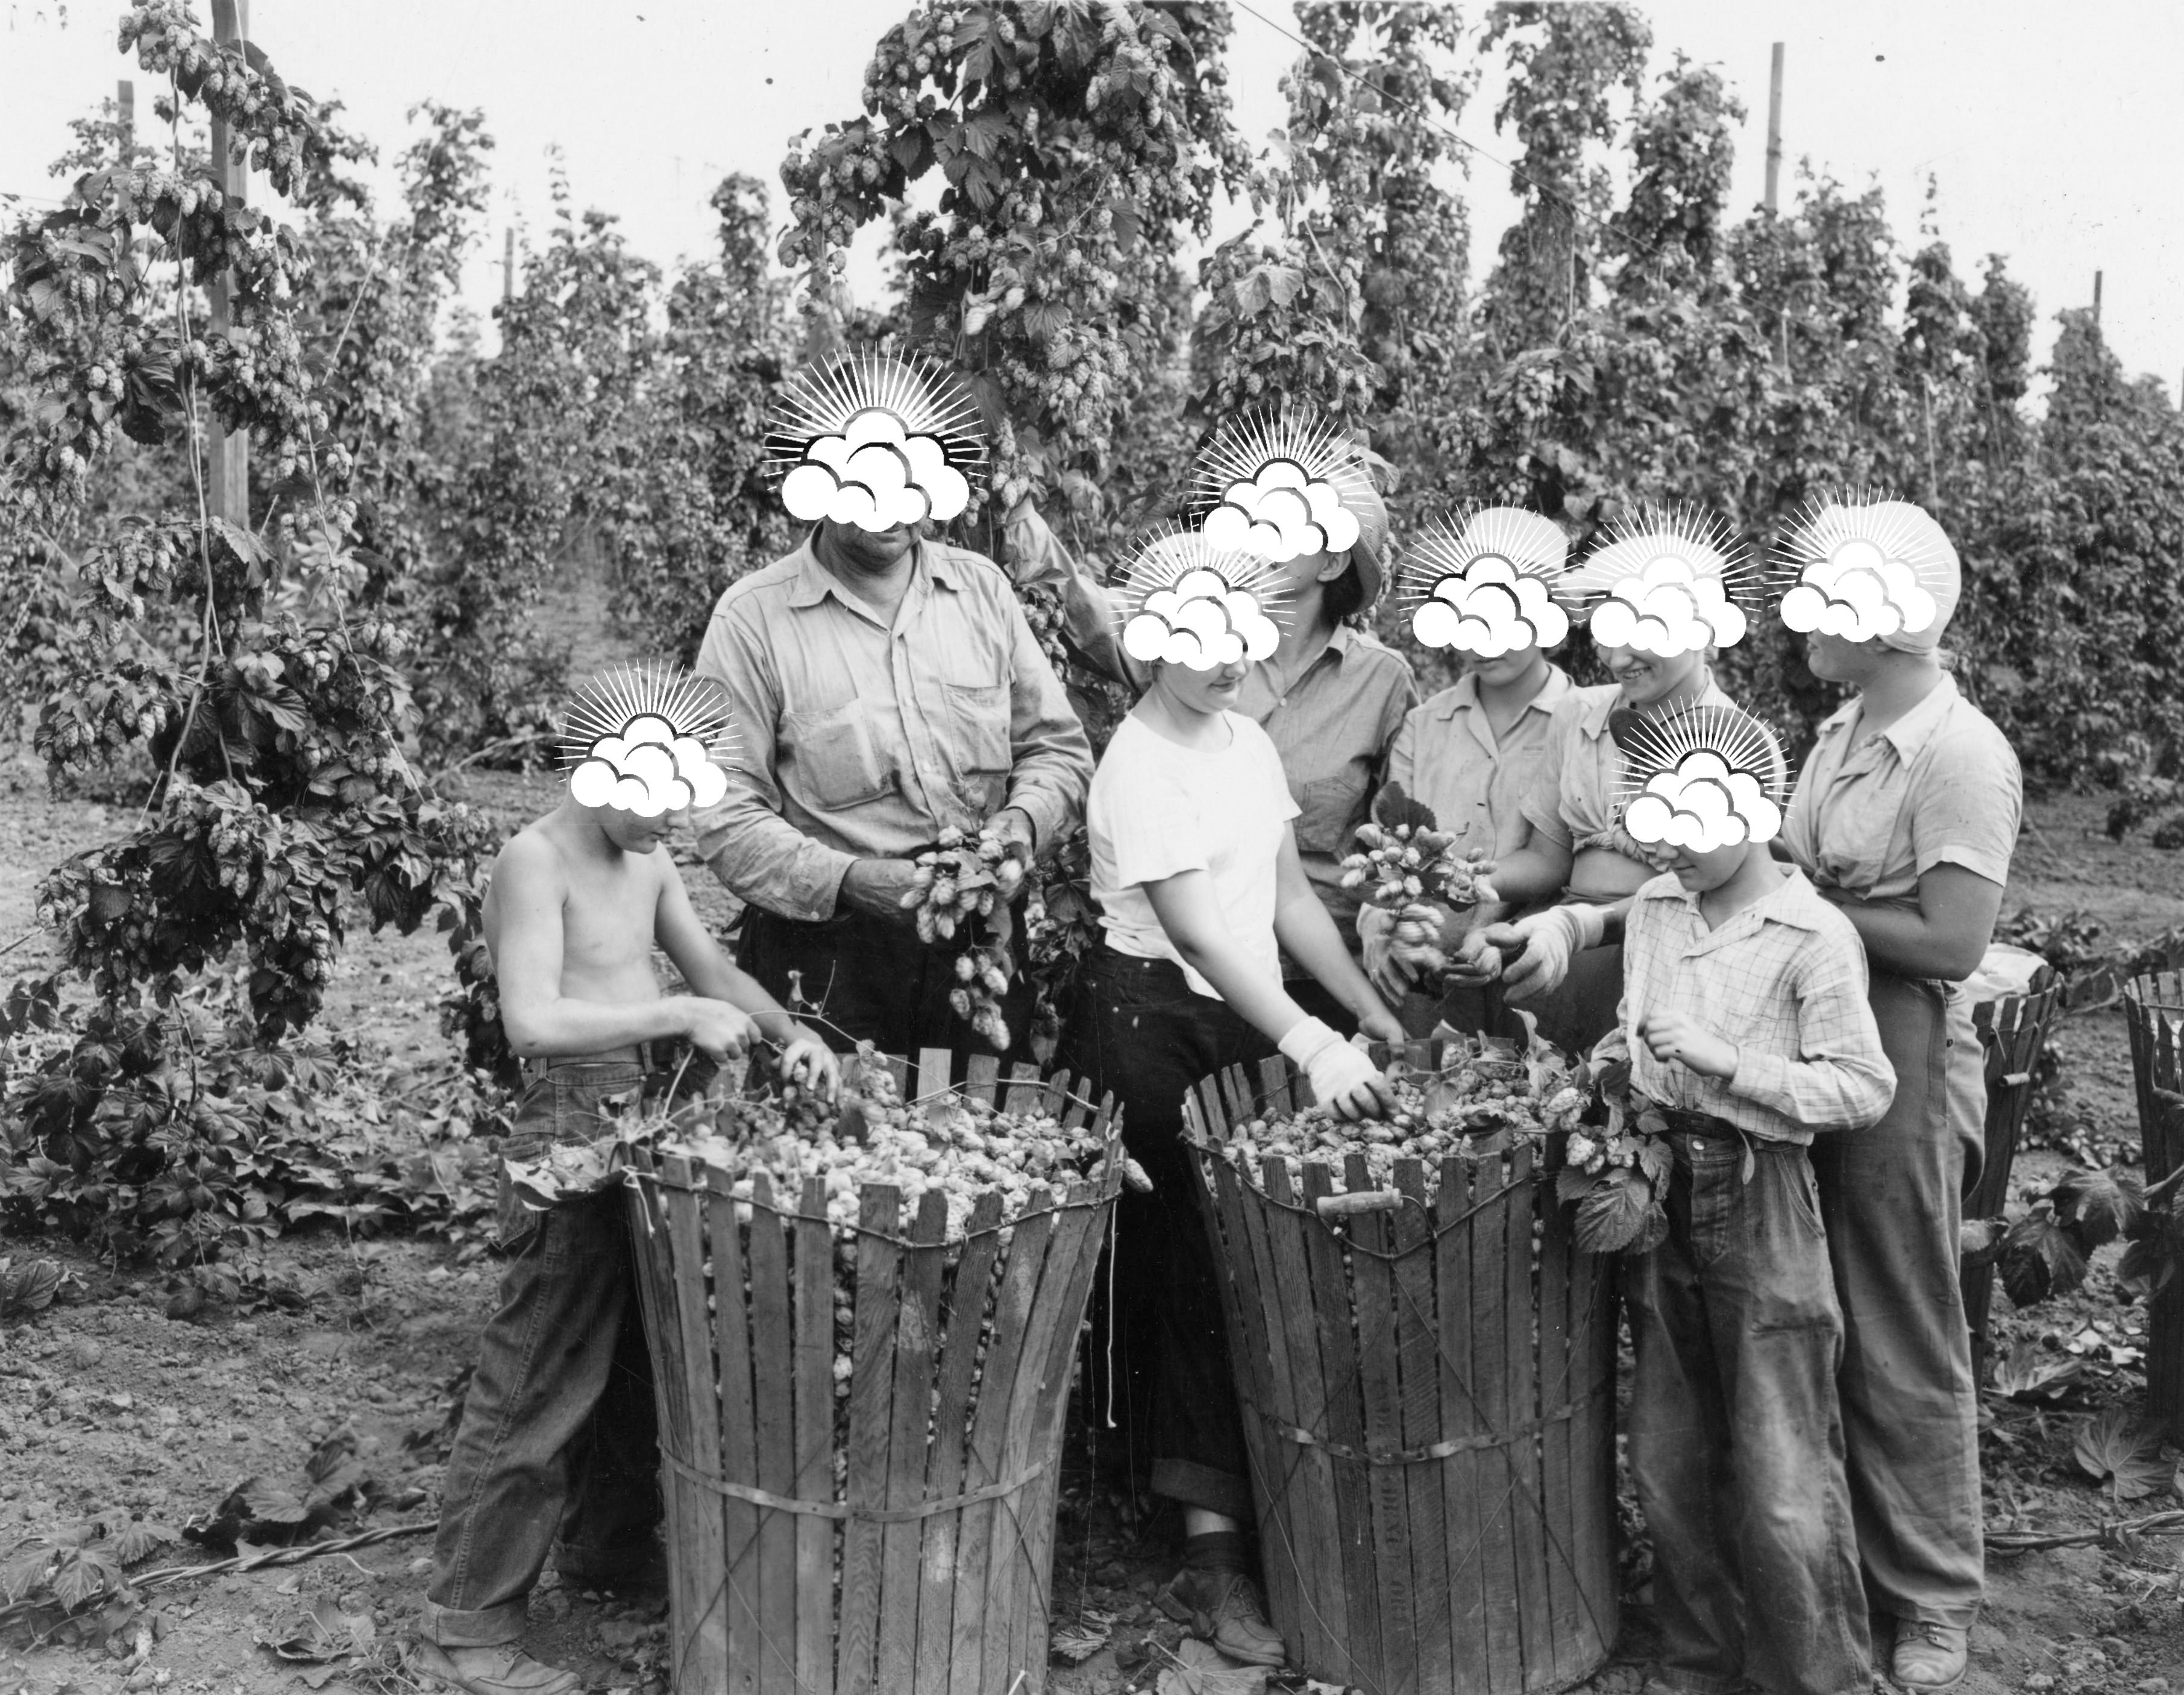 A photo of a family in the 1940s harvesting hops for beer making. They all have the Stormcloud Brewing cloudburst over their faces.